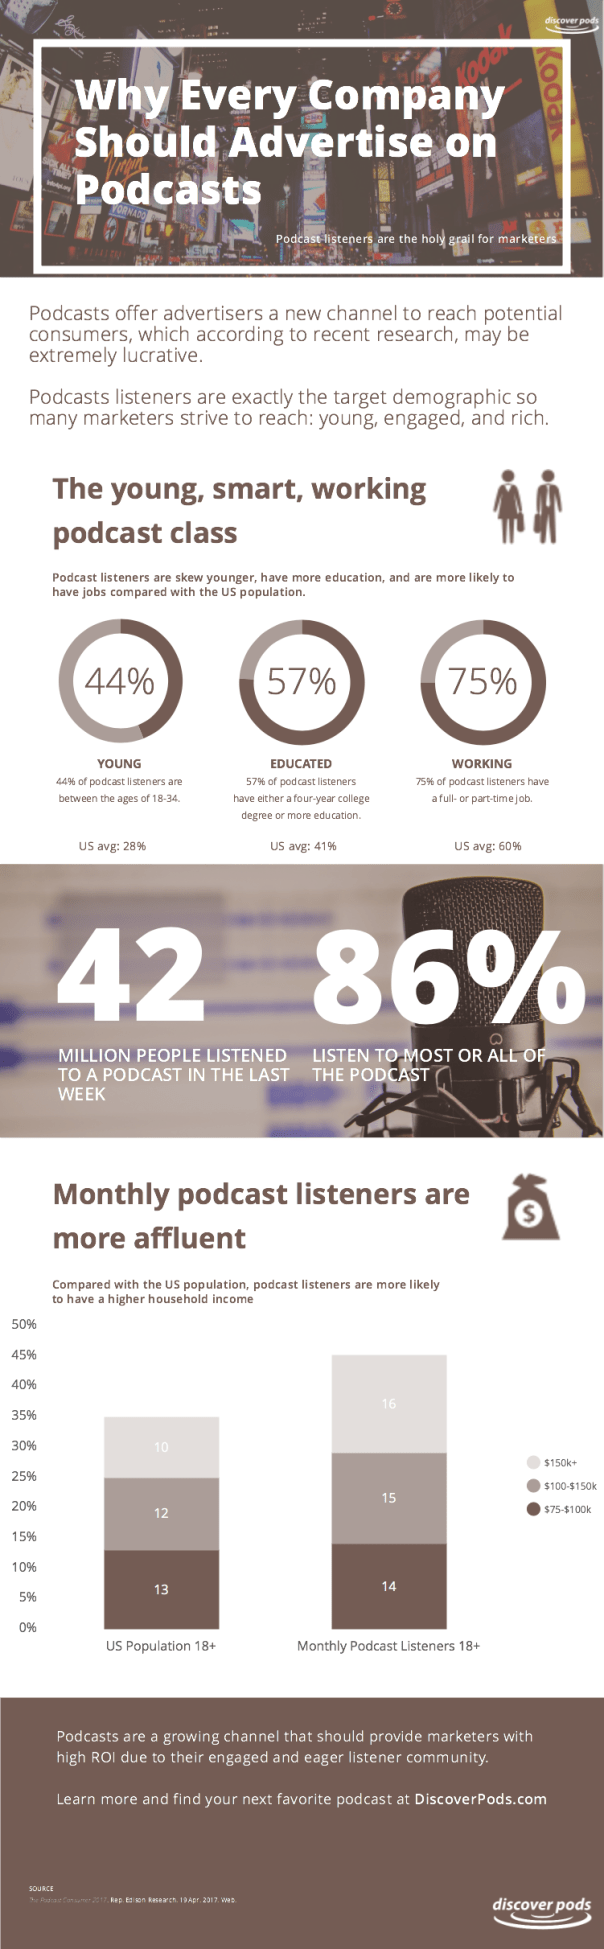 Why Every B2C Company Should Advertise on Podcasts [Infographic]